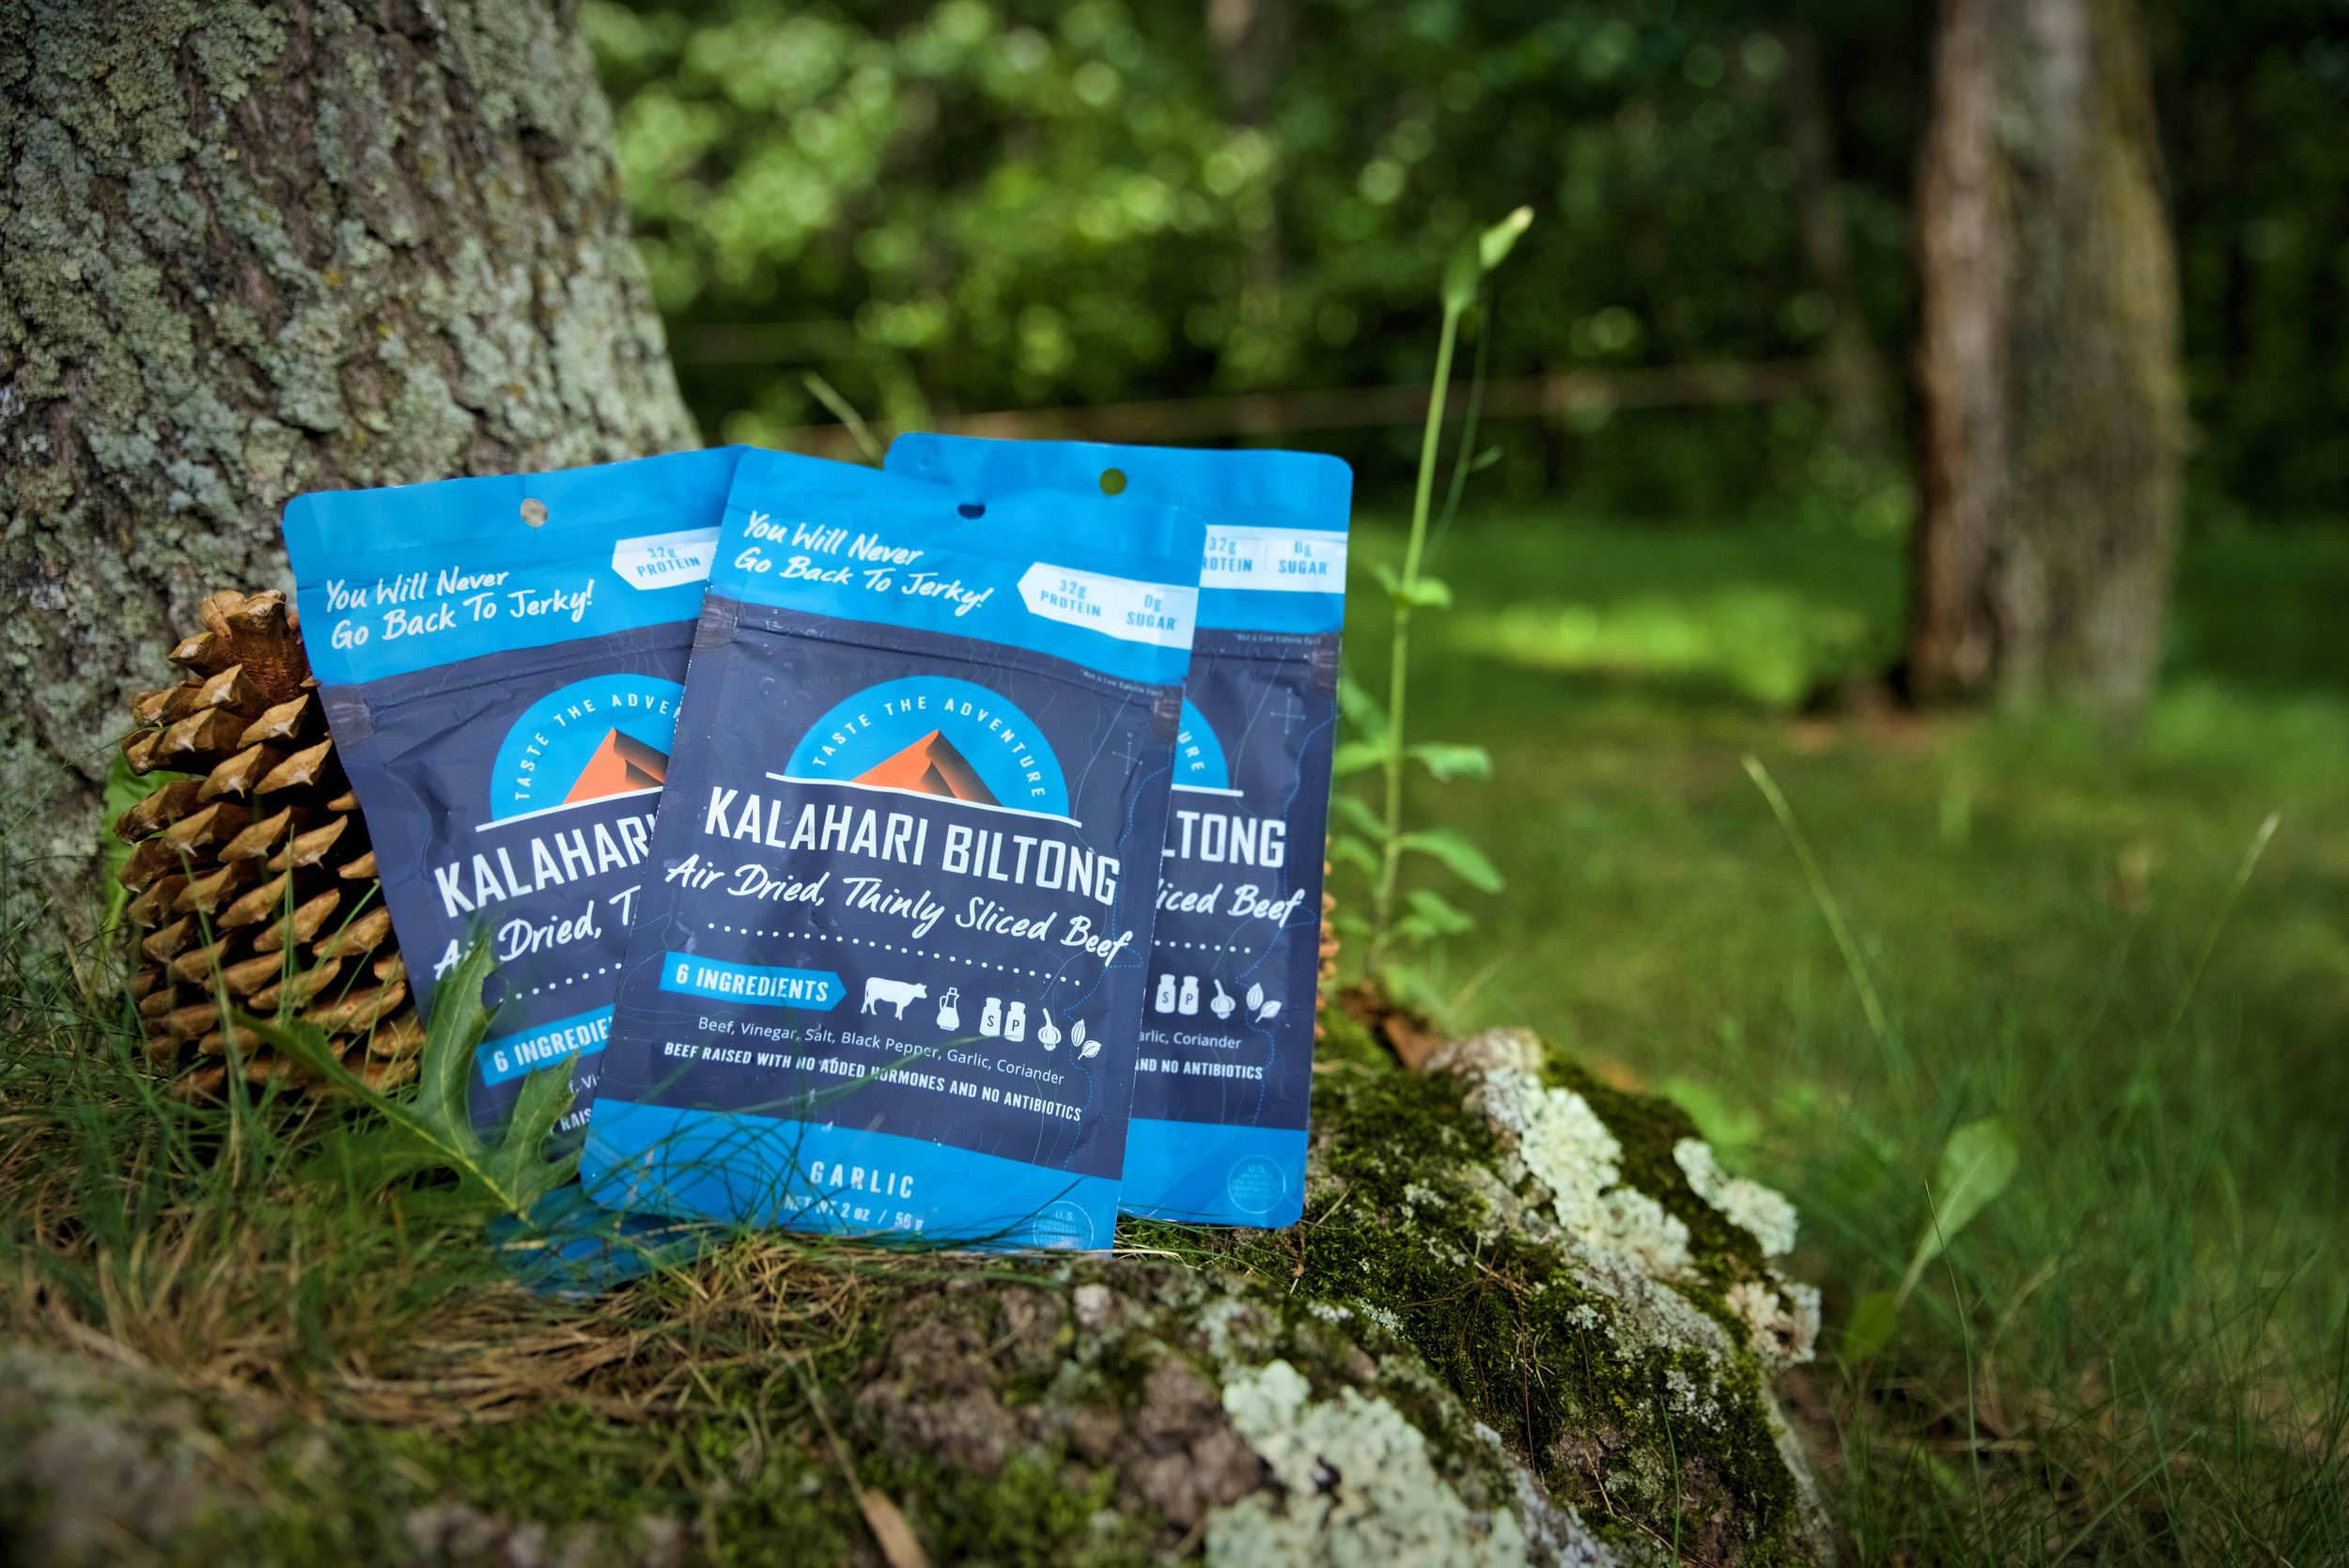 Kalahari Biltong is a very nutritious food to fuel any long-distance expedition.